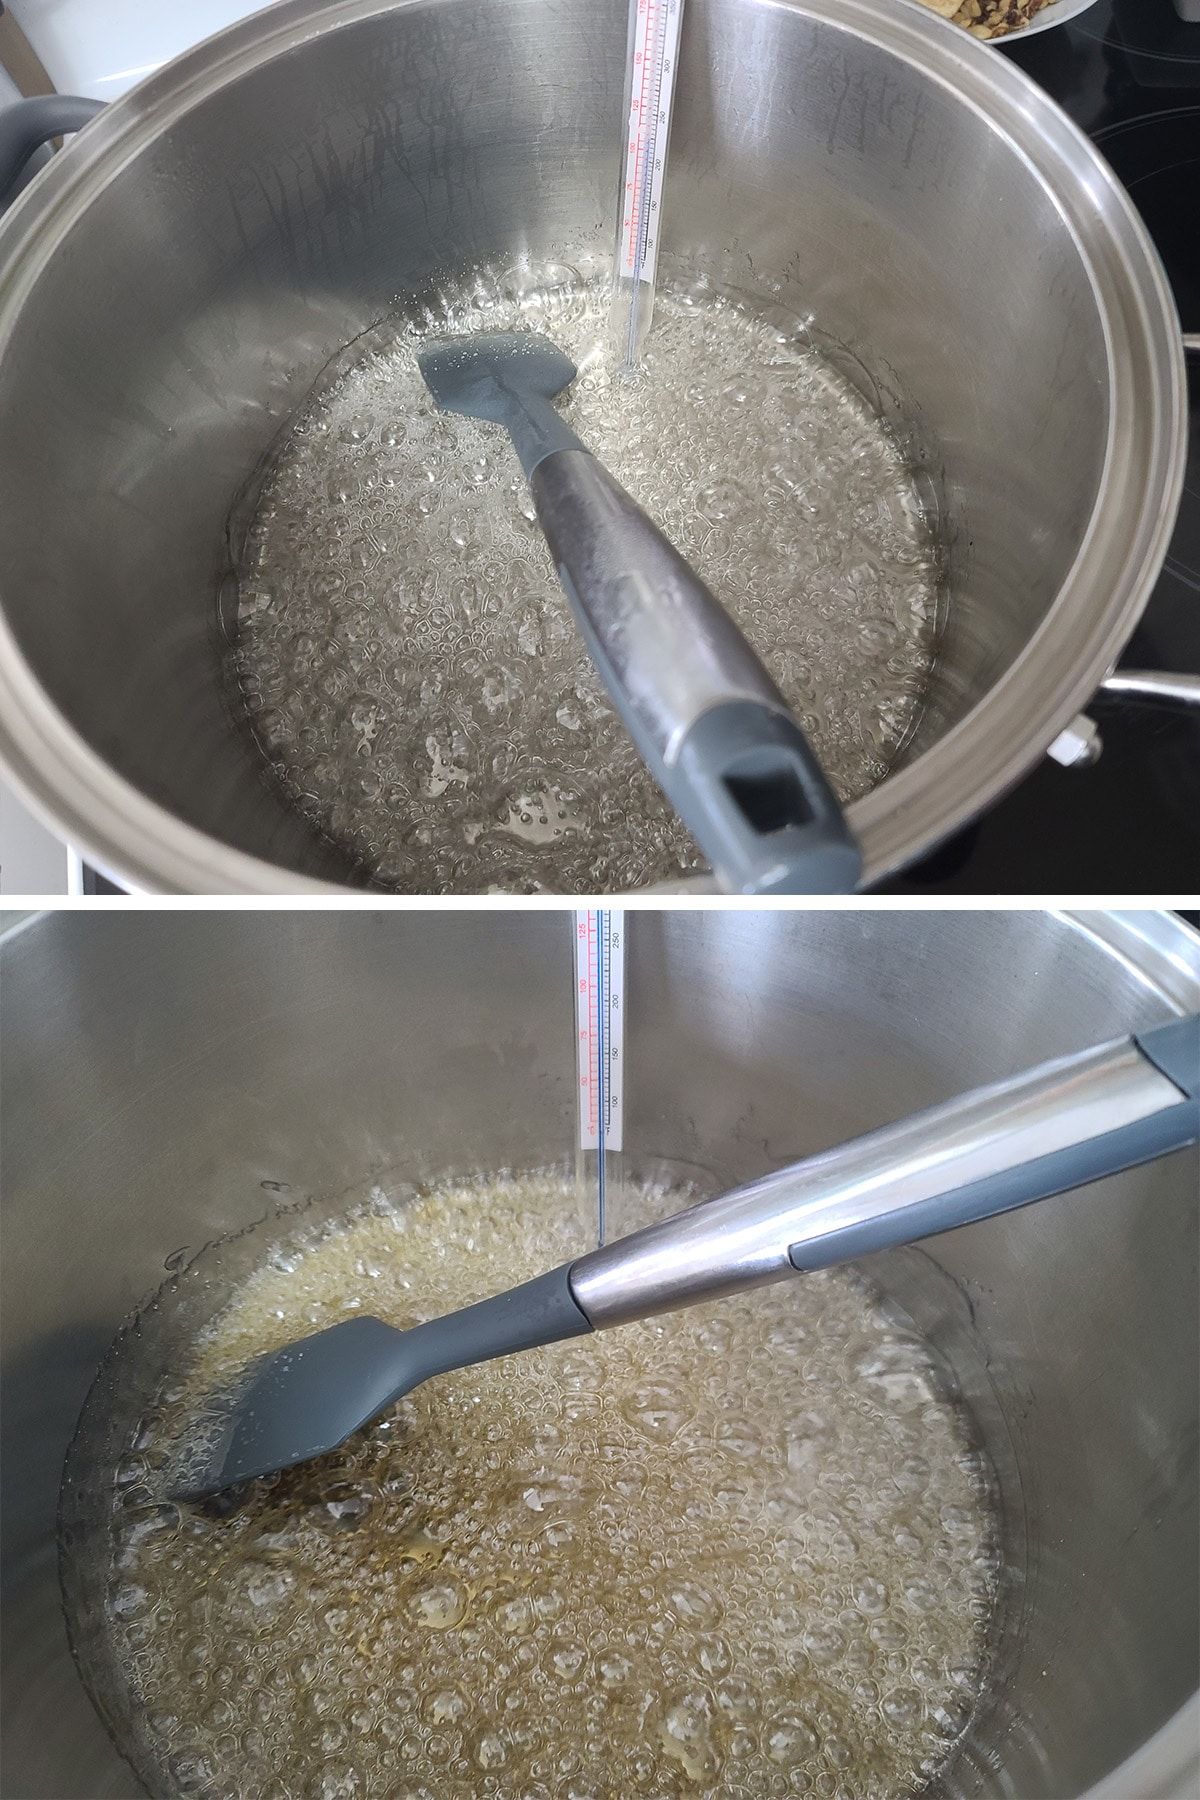 The sugar mixture boiling in a pot, starting to turn golden.